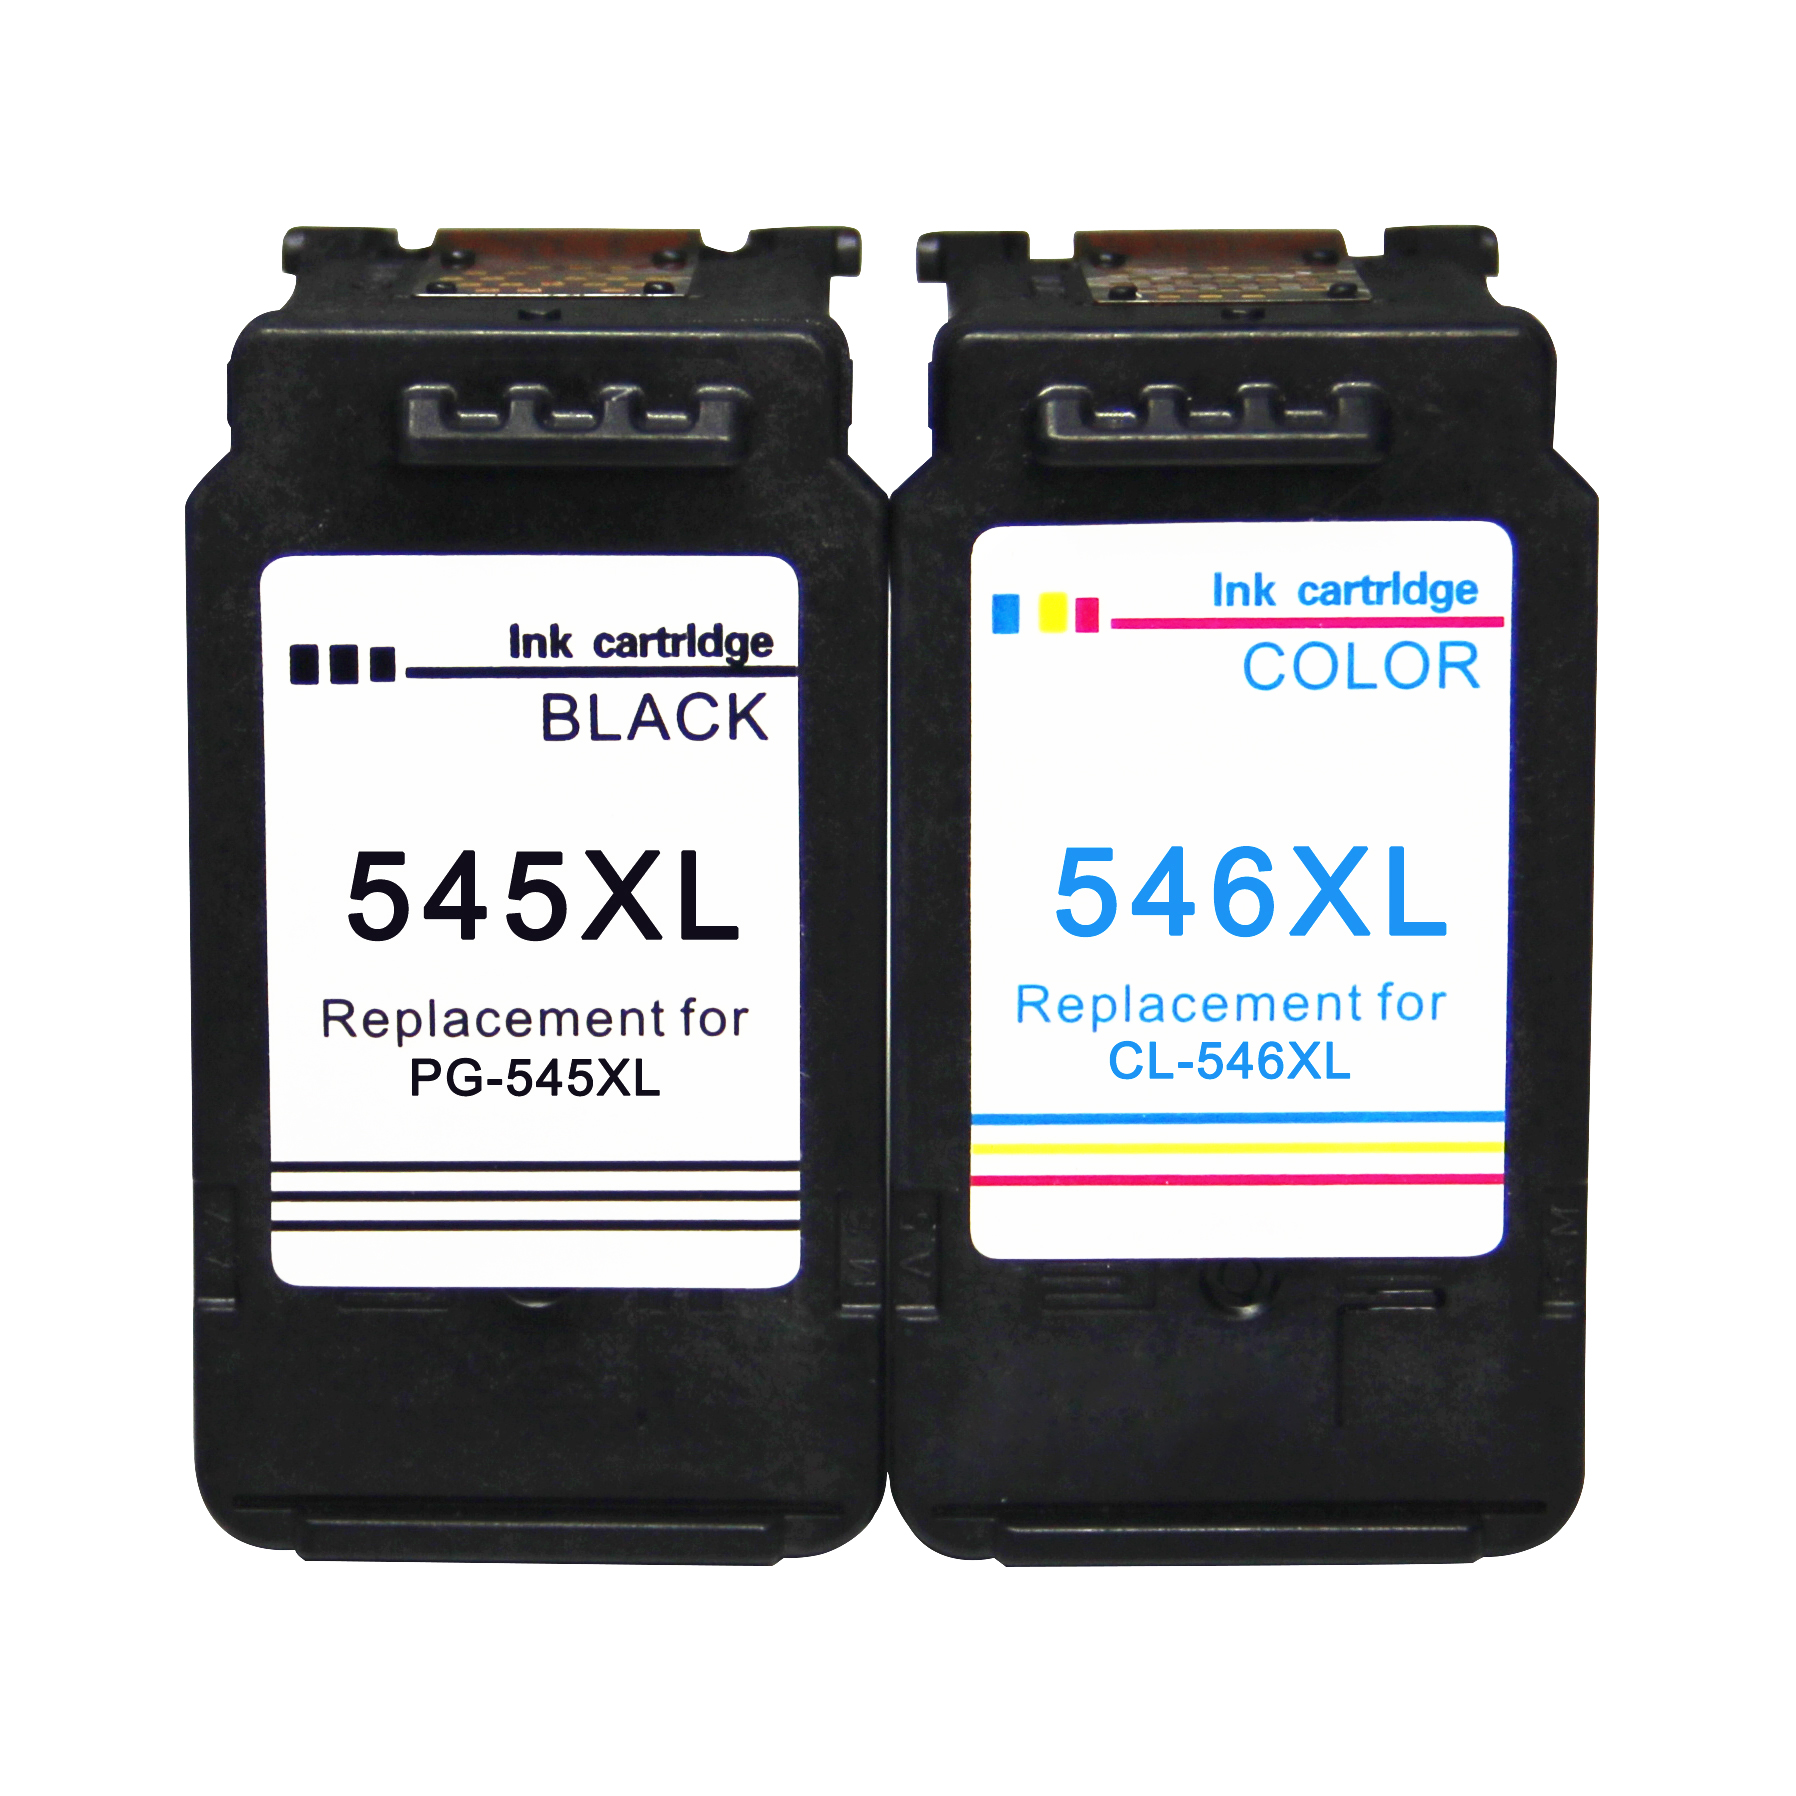 Kompatibel PG-545XL CL-546XL untuk Canon PG 545 CL 546 Ink CANON PIXMA MG2550 3050 MX495 IP2850 TS3150 TS3151